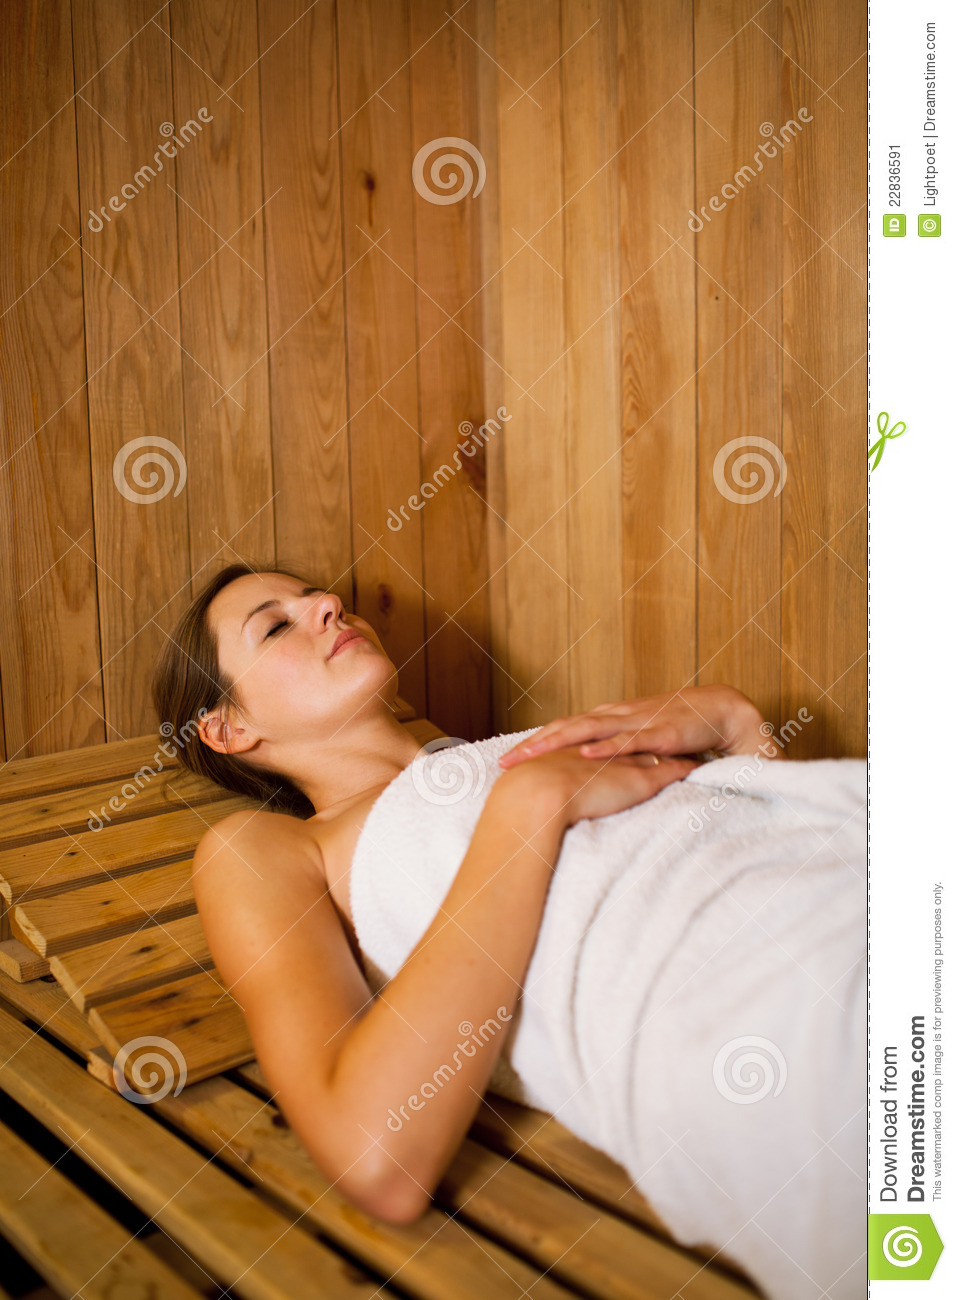 Woman Relaxing In A Sauna Stock Image - Image 22836591-3271